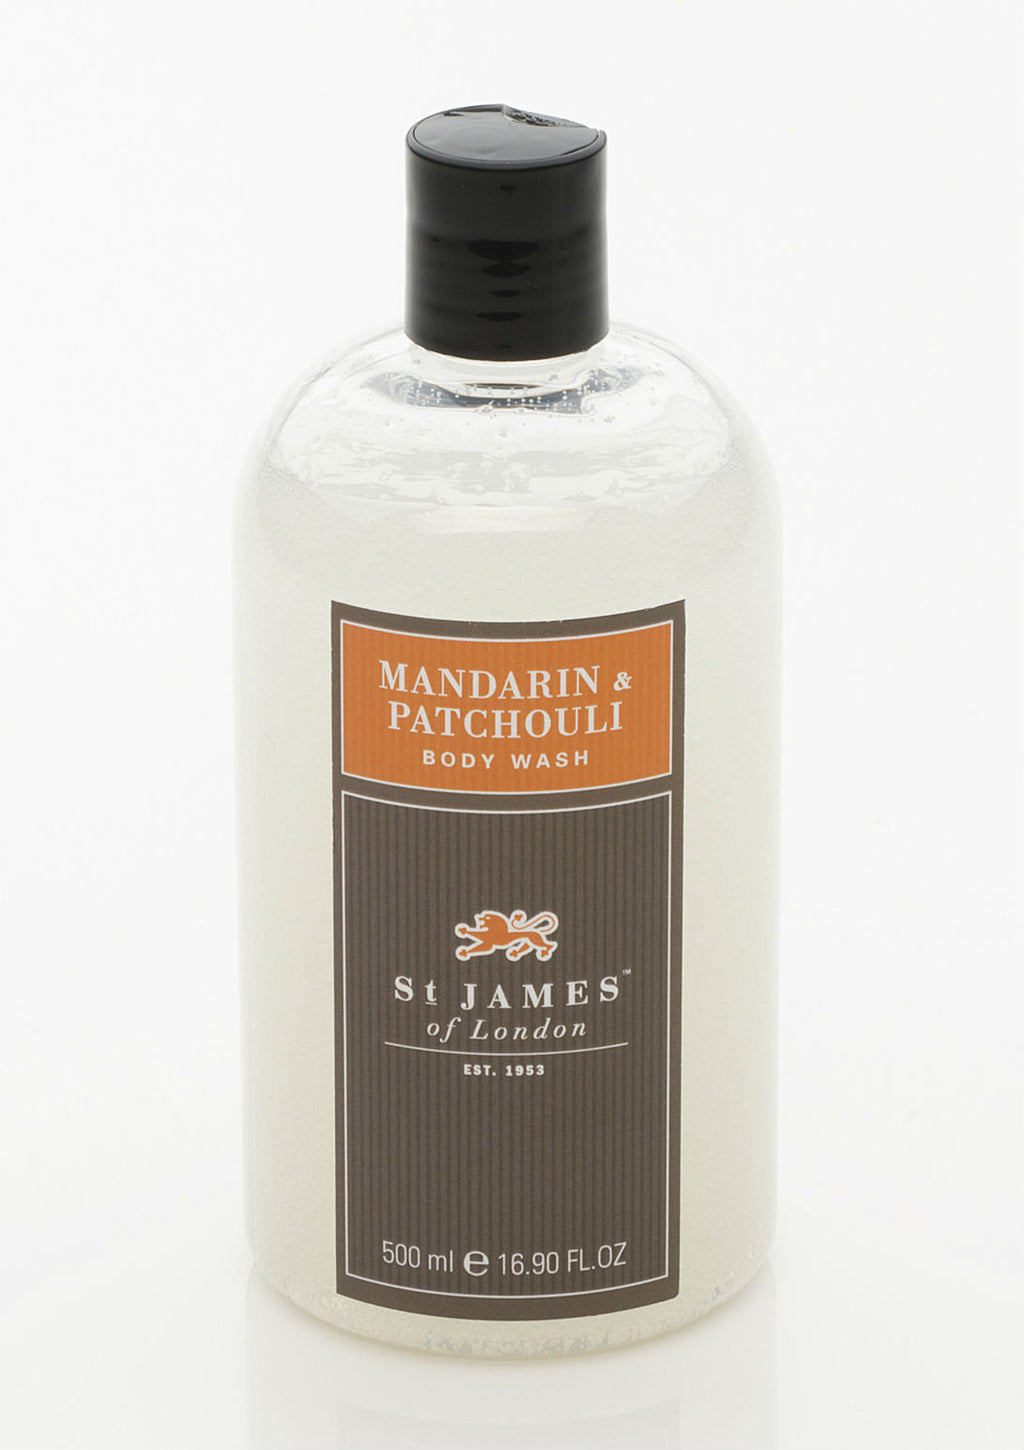 Mandarin & Patchouli Body Wash 8oz